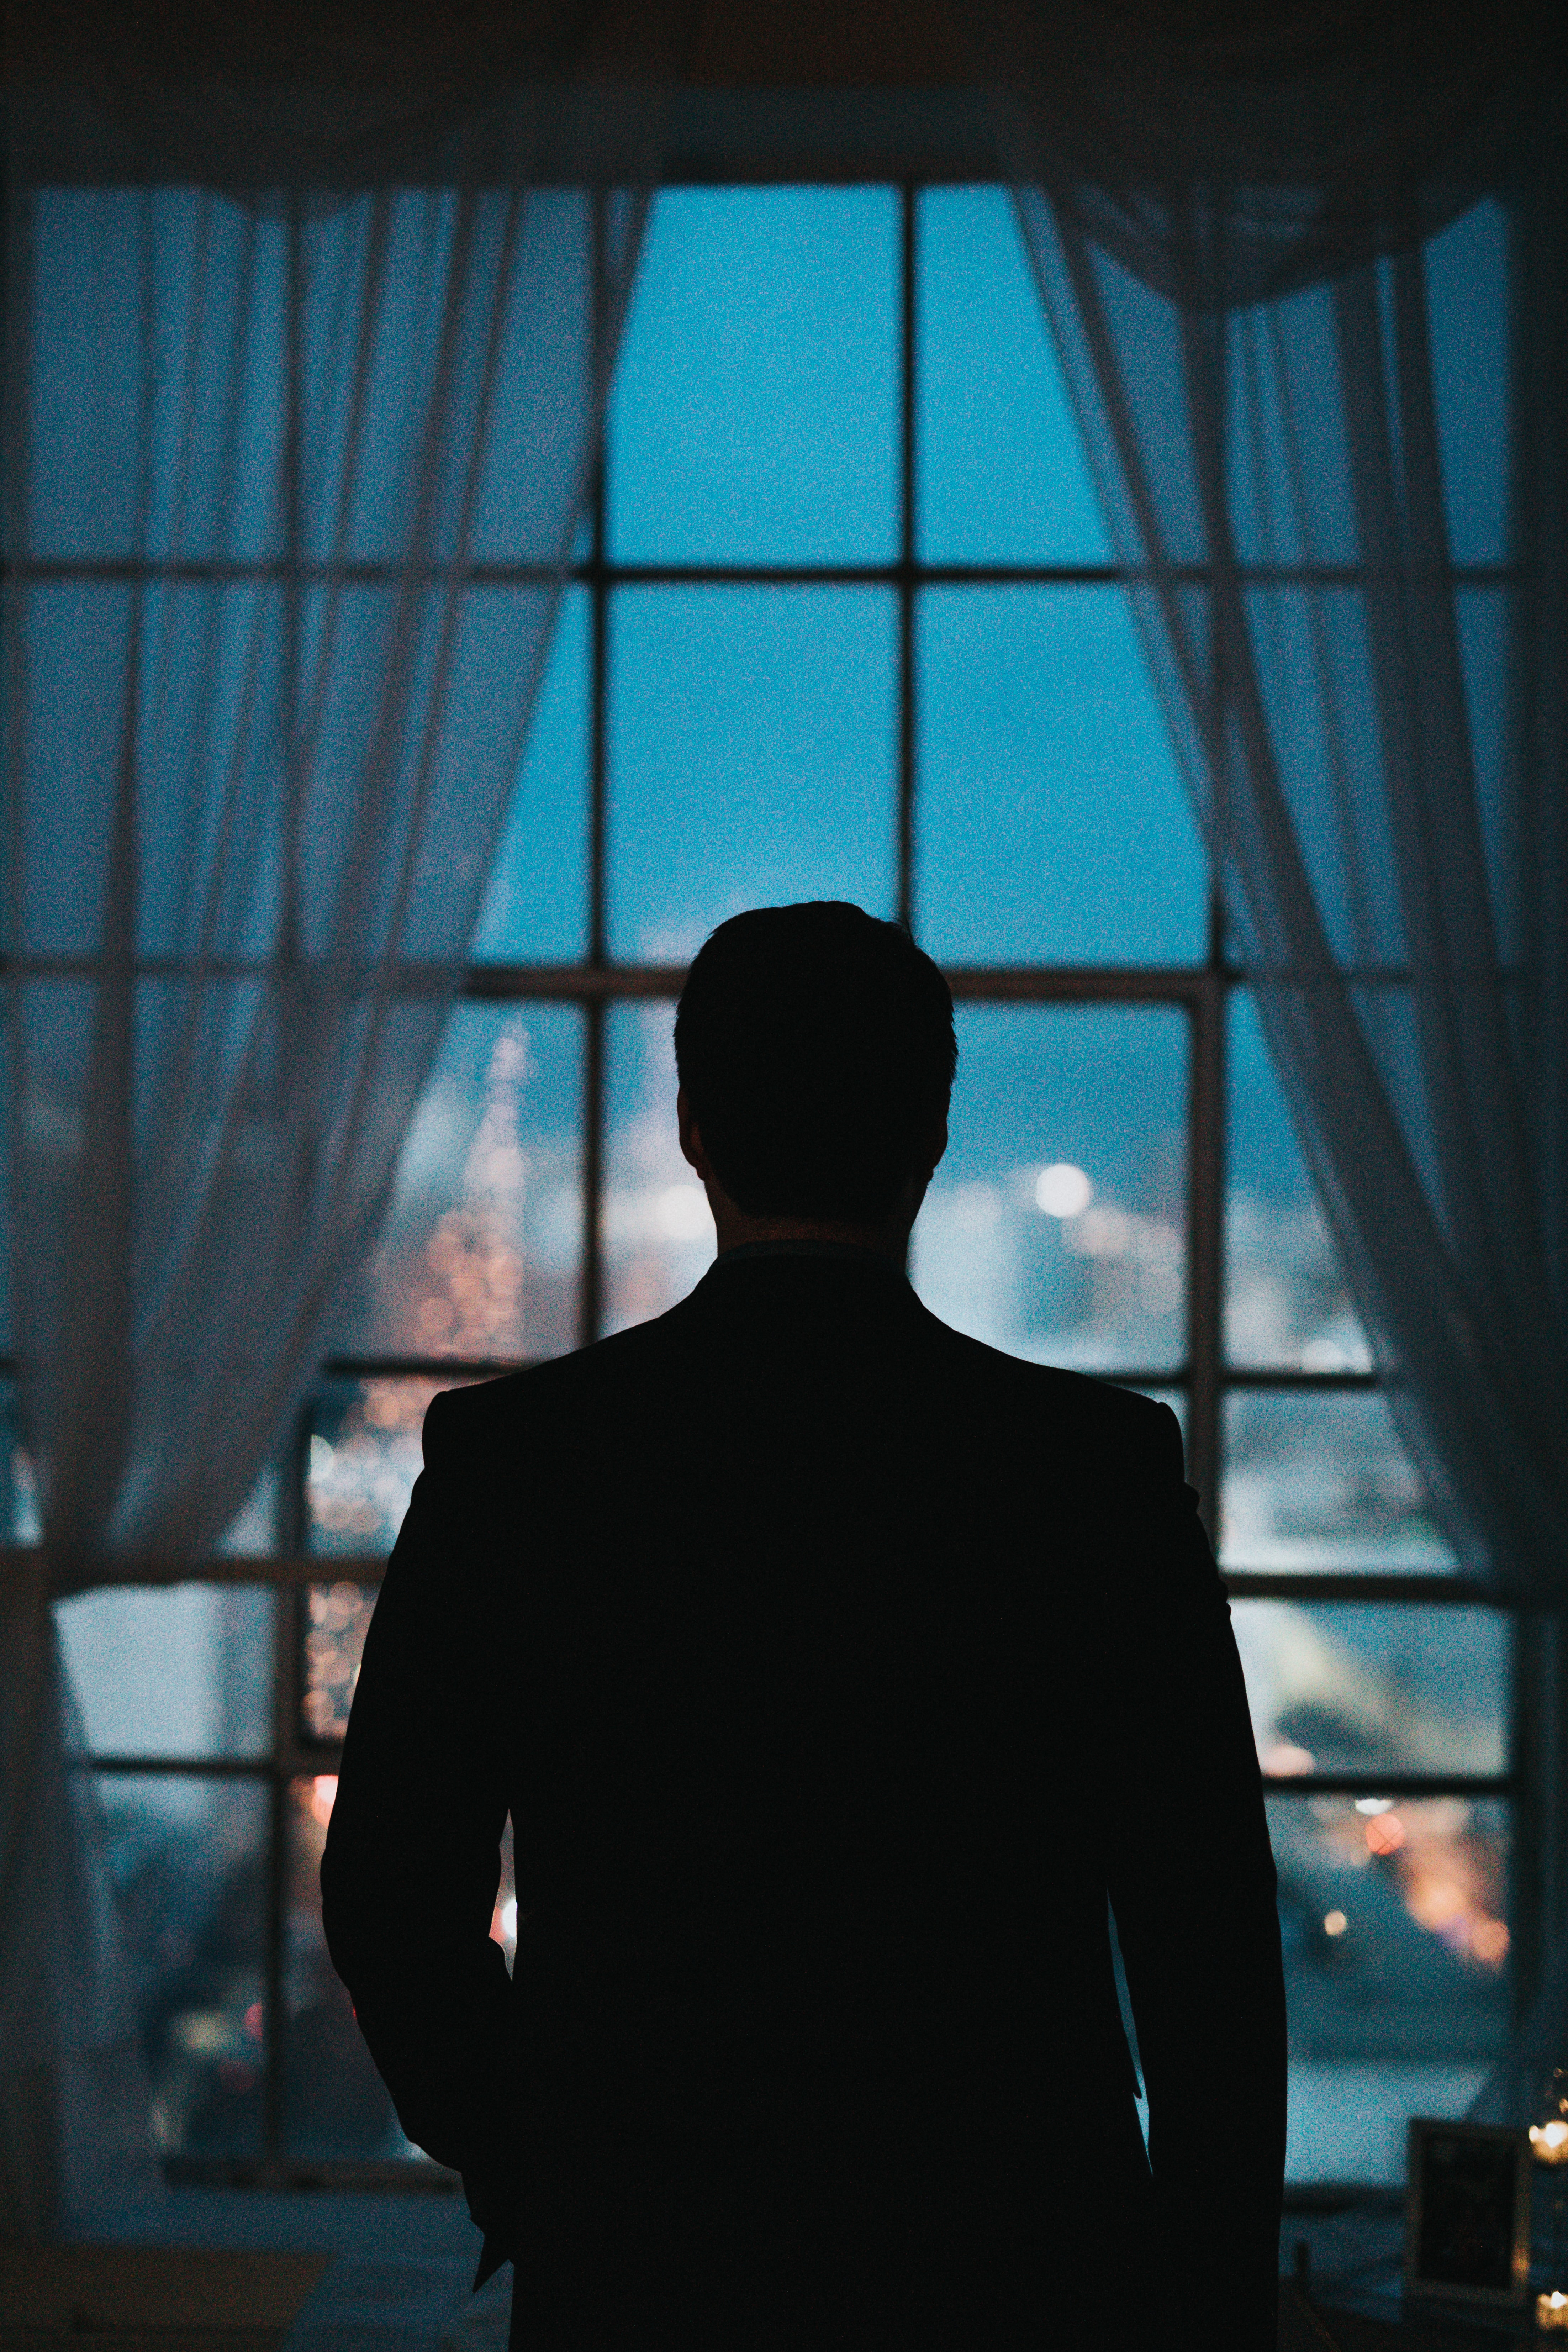 silhouette of person standing against windowpane